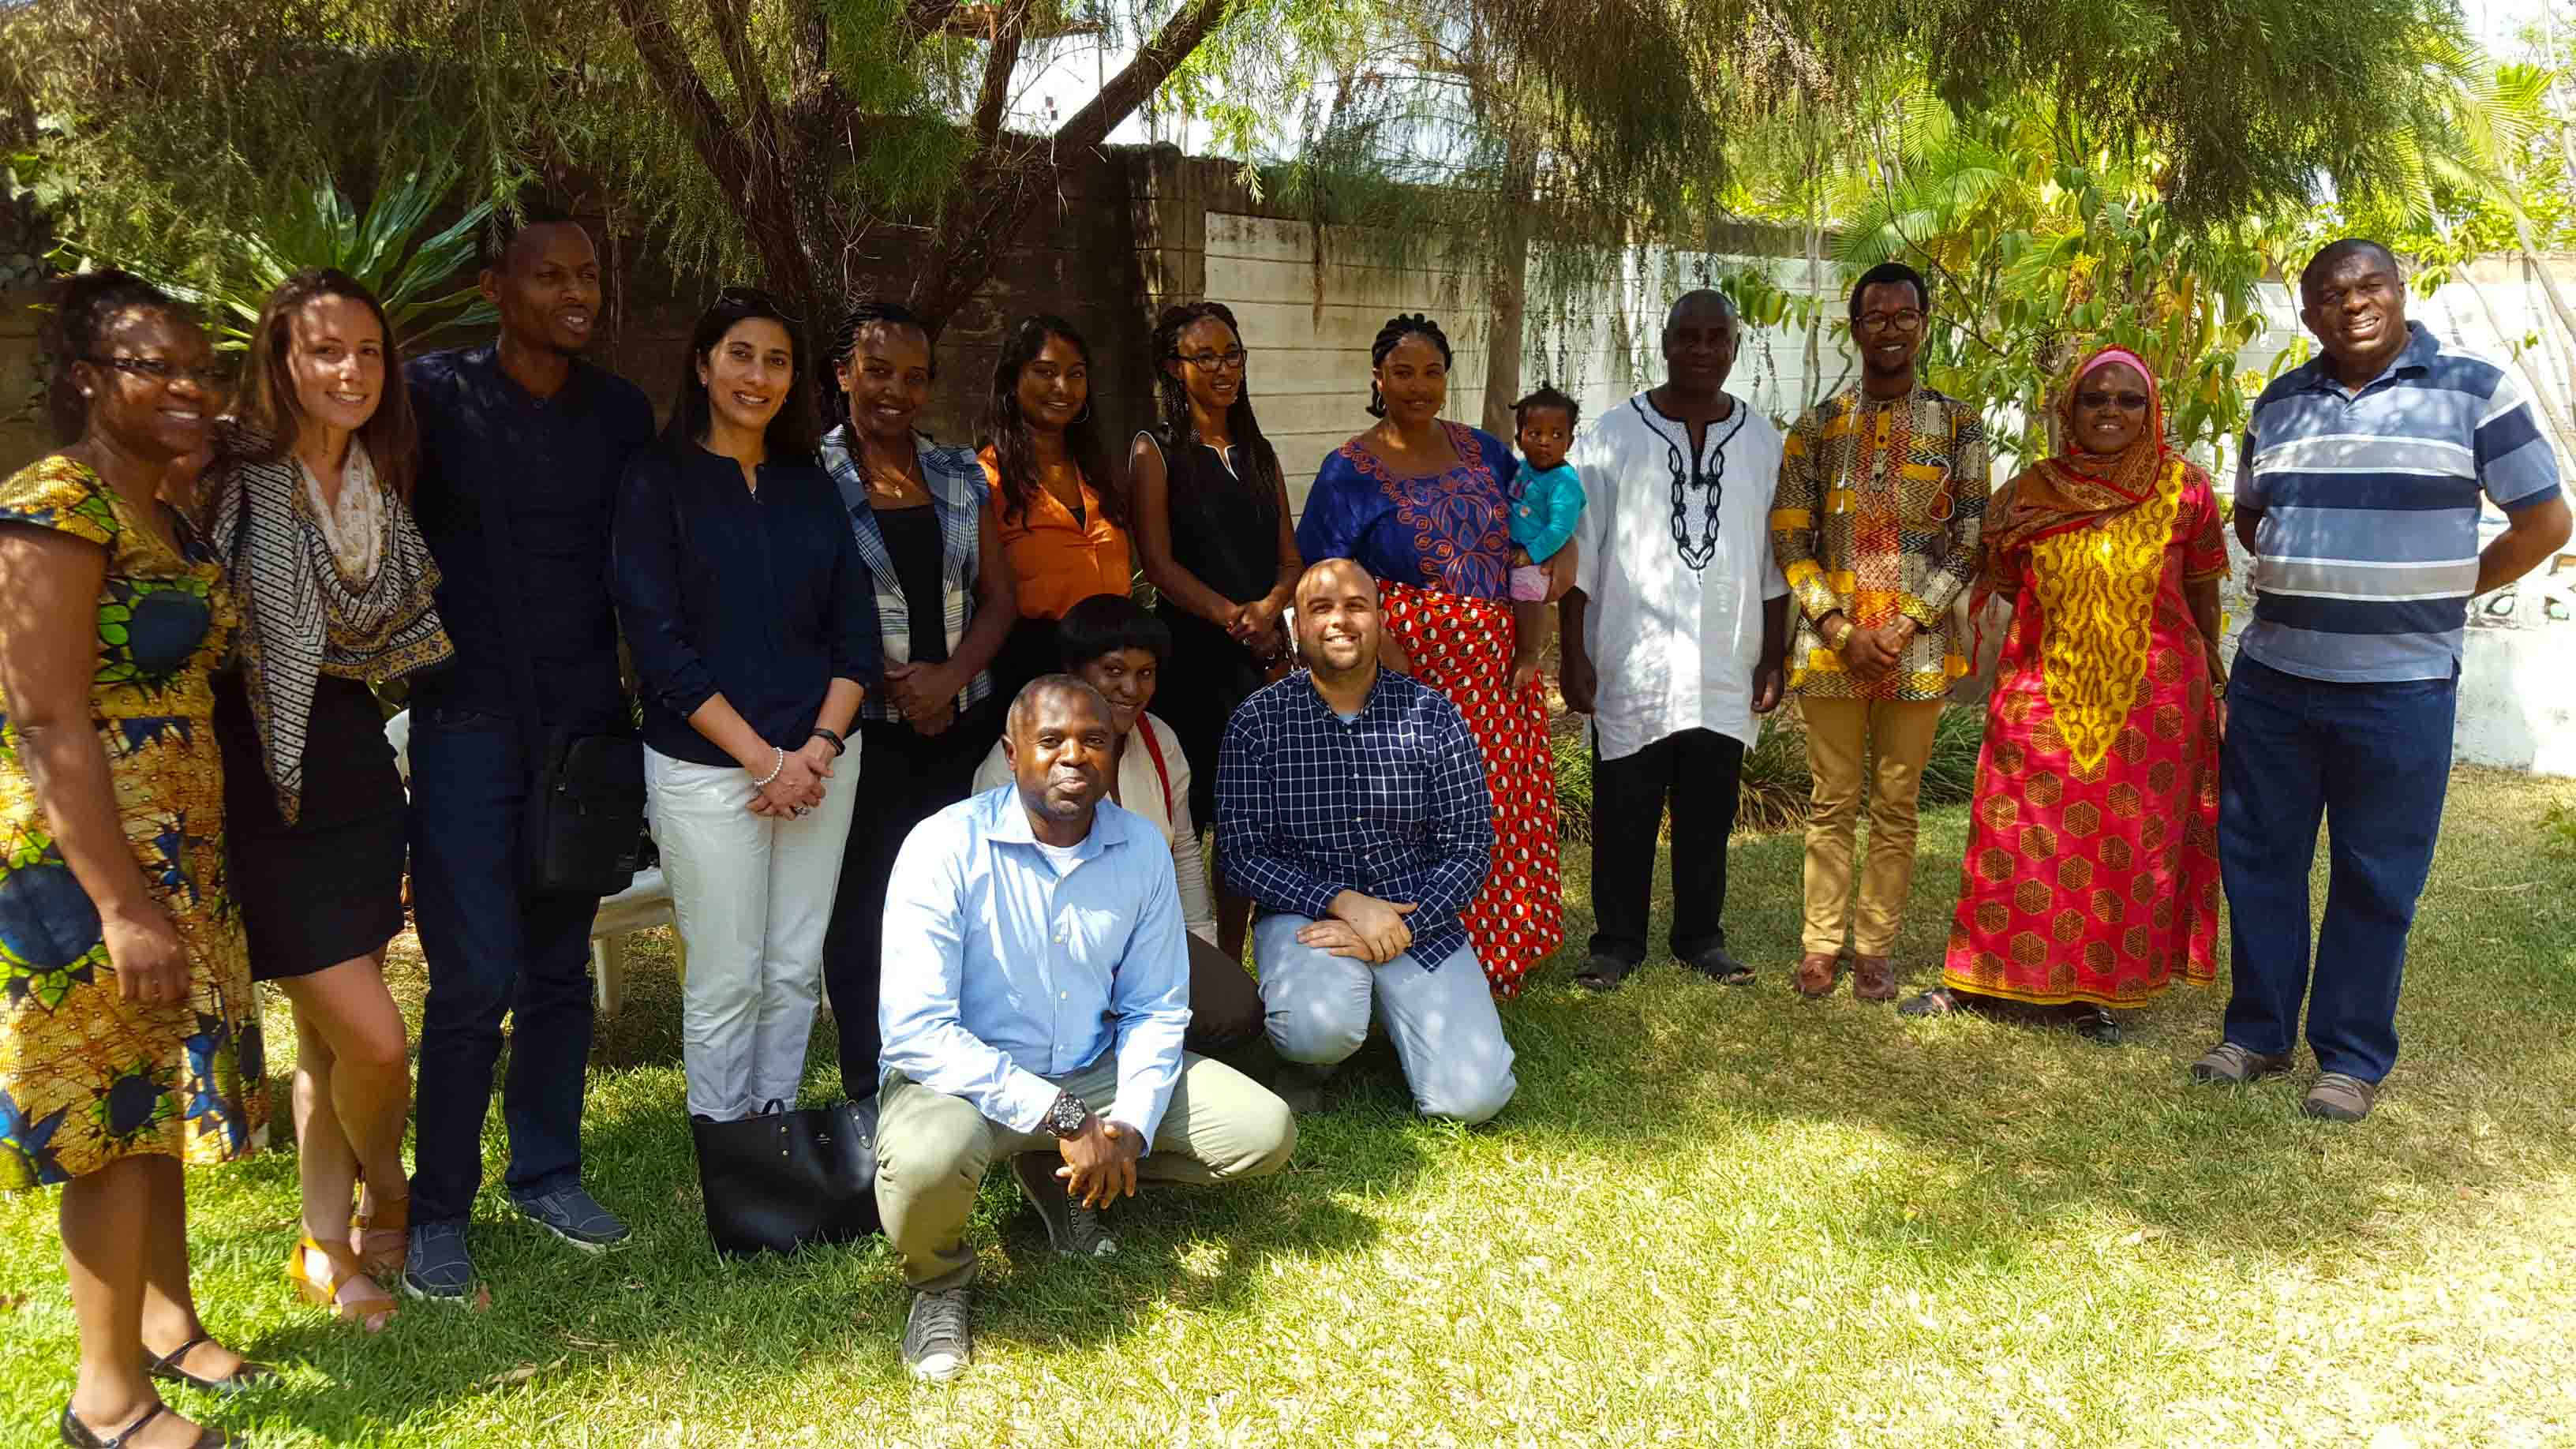 Team members from MCW's international network meet in Lusaka, Zambia for the Fourth Community Leaders Seminar in October 2016